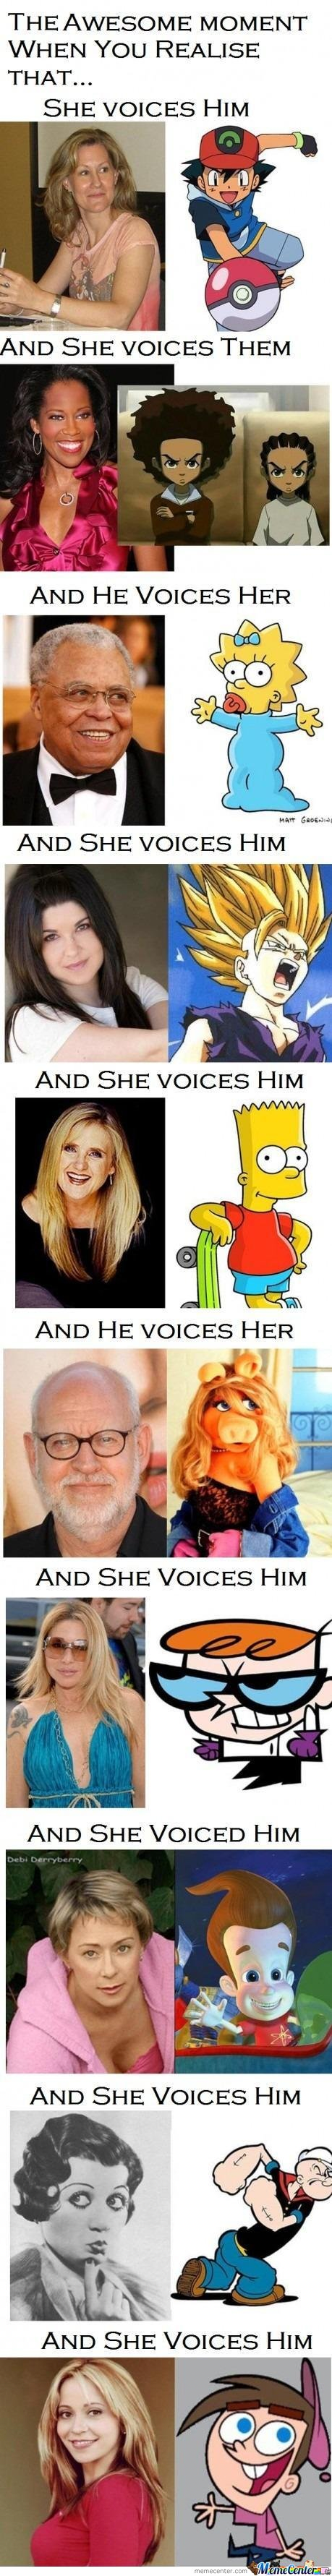 He Voiced Her  And She Voice Him...wait..what?